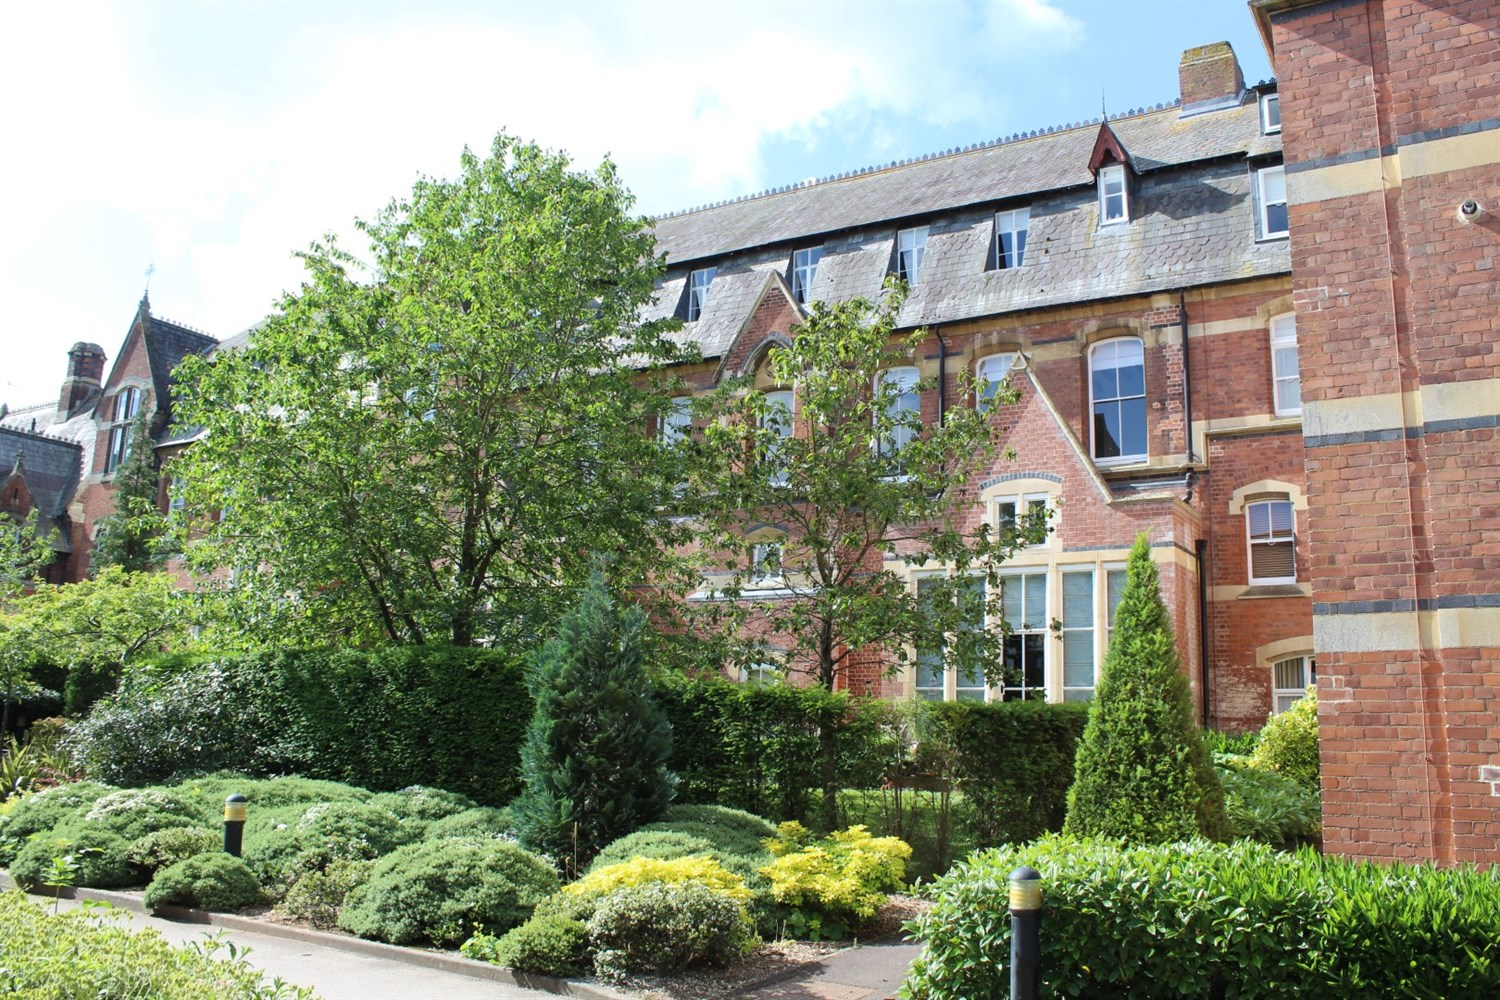 39 Frome Court, Bartestree, Hereford